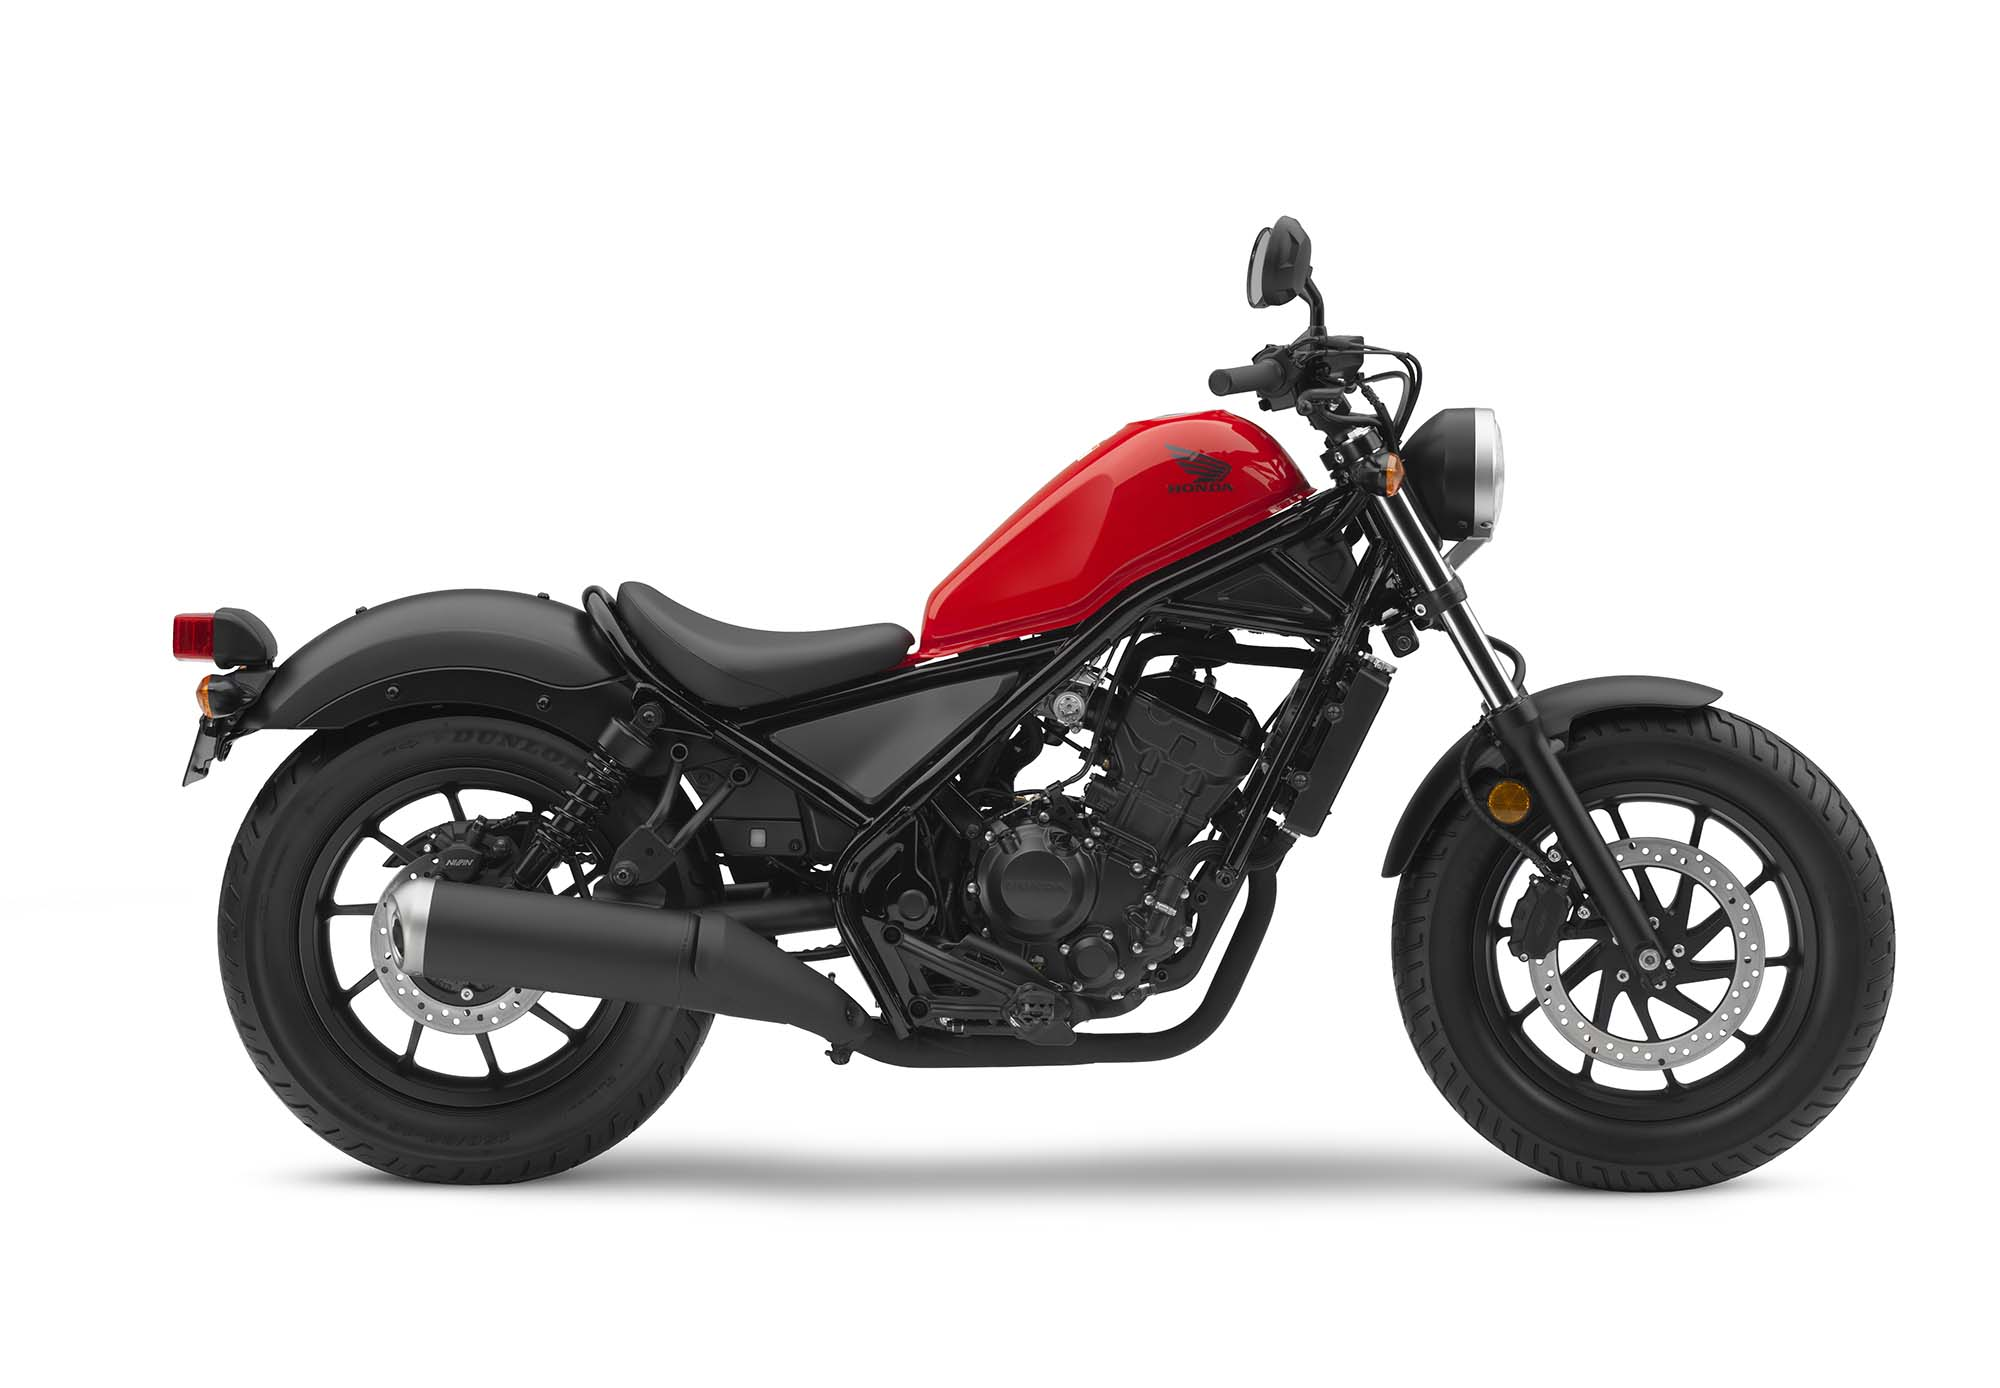 new honda rebel 500 rebel 300 models debut. Black Bedroom Furniture Sets. Home Design Ideas